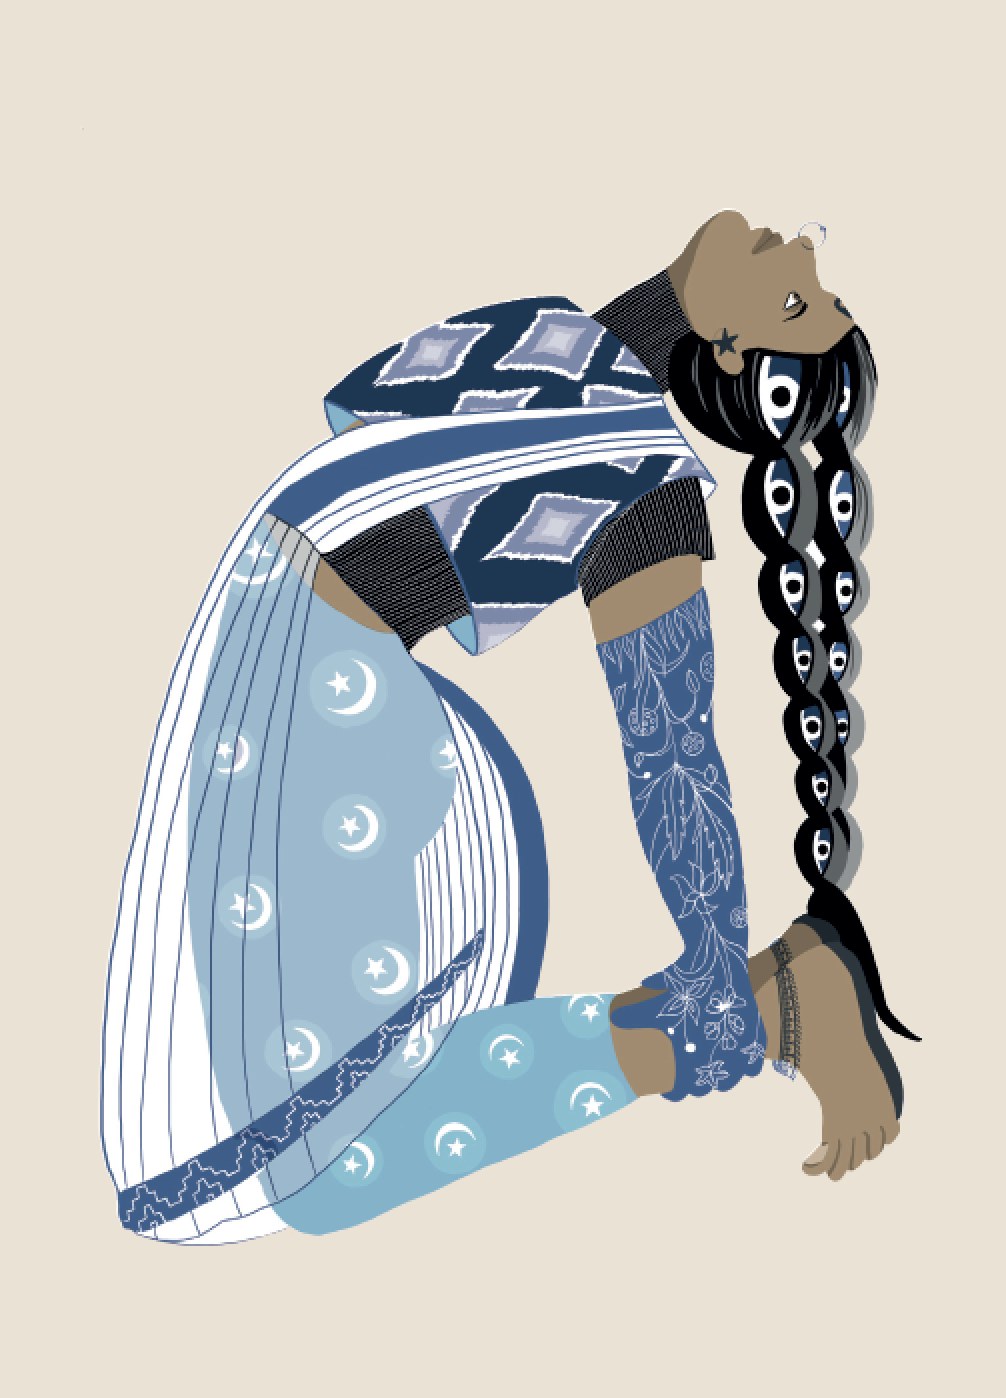 2019. Ustr ā sana (Camel Pose) Digital print on paper 5 in. x 7 in.  Practiced wearing moon and stars tights, a quilted Ikat sleeveless pullover layered on a turtleneck, single-tone Kashmiri floral gloves, and a delicate sheer cotton handloom sari.   Purchase